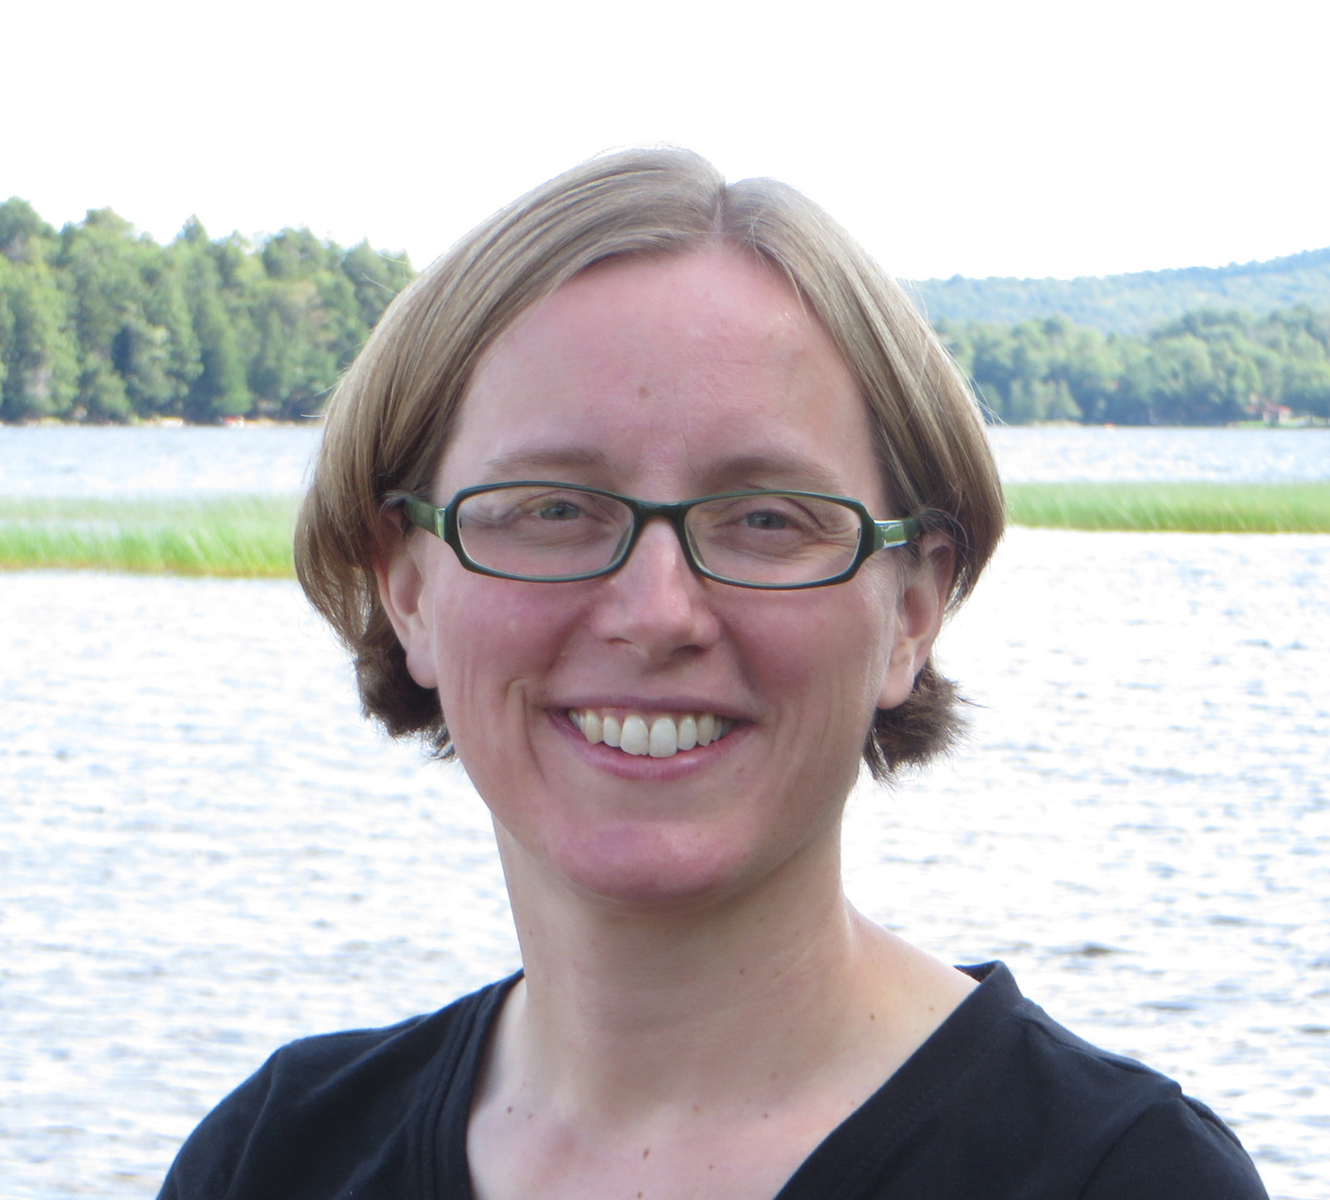 University of Michigan ecologist Meghan Duffy. Image credit: Richard Alben